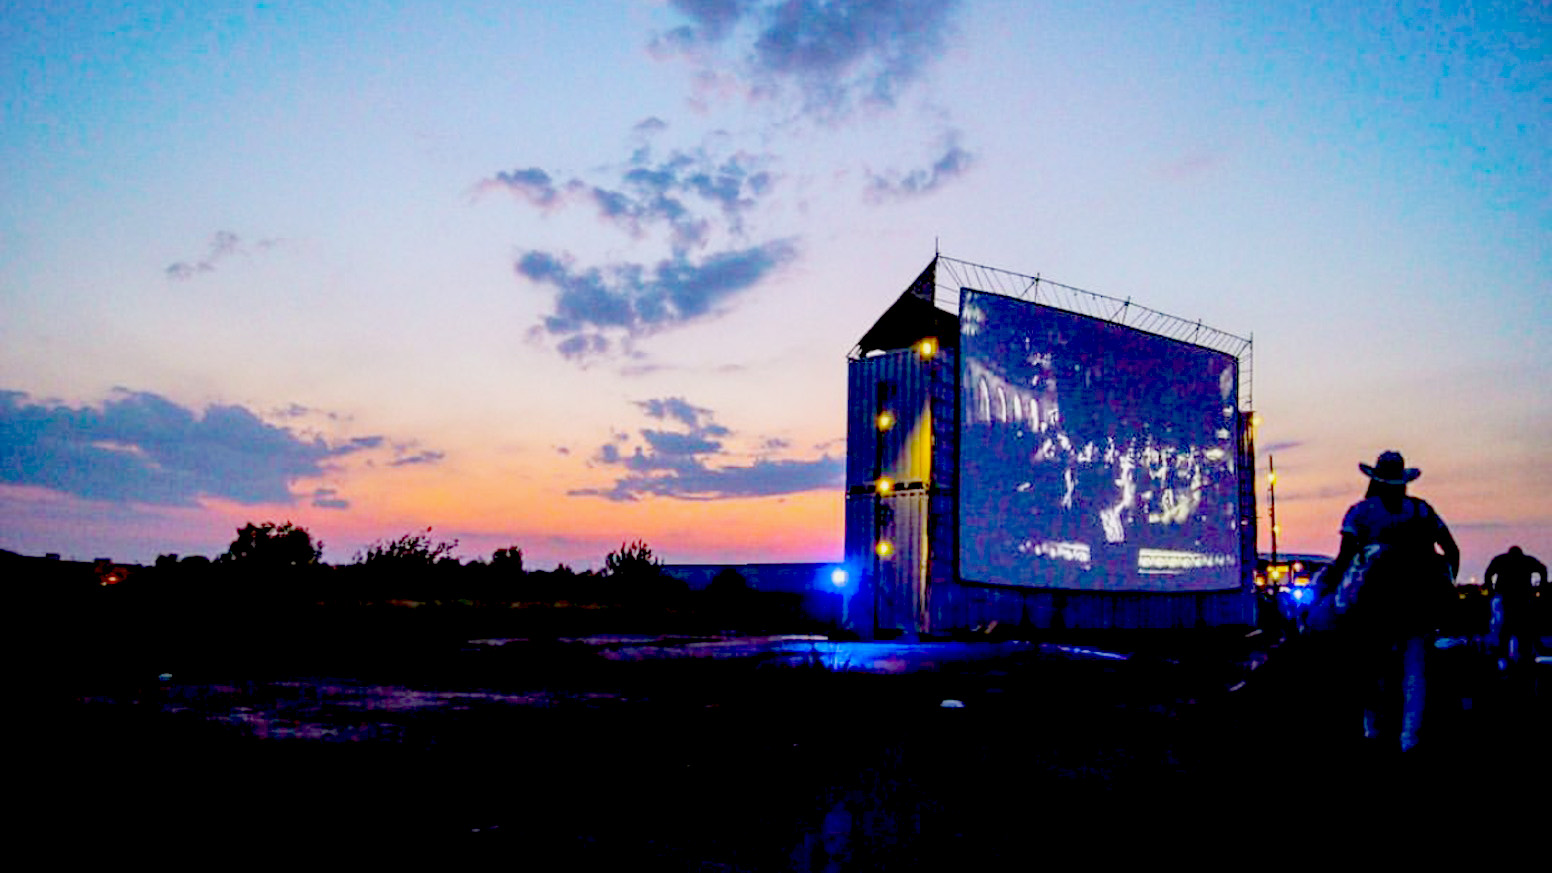 Image of Blue Starlite Drive-In